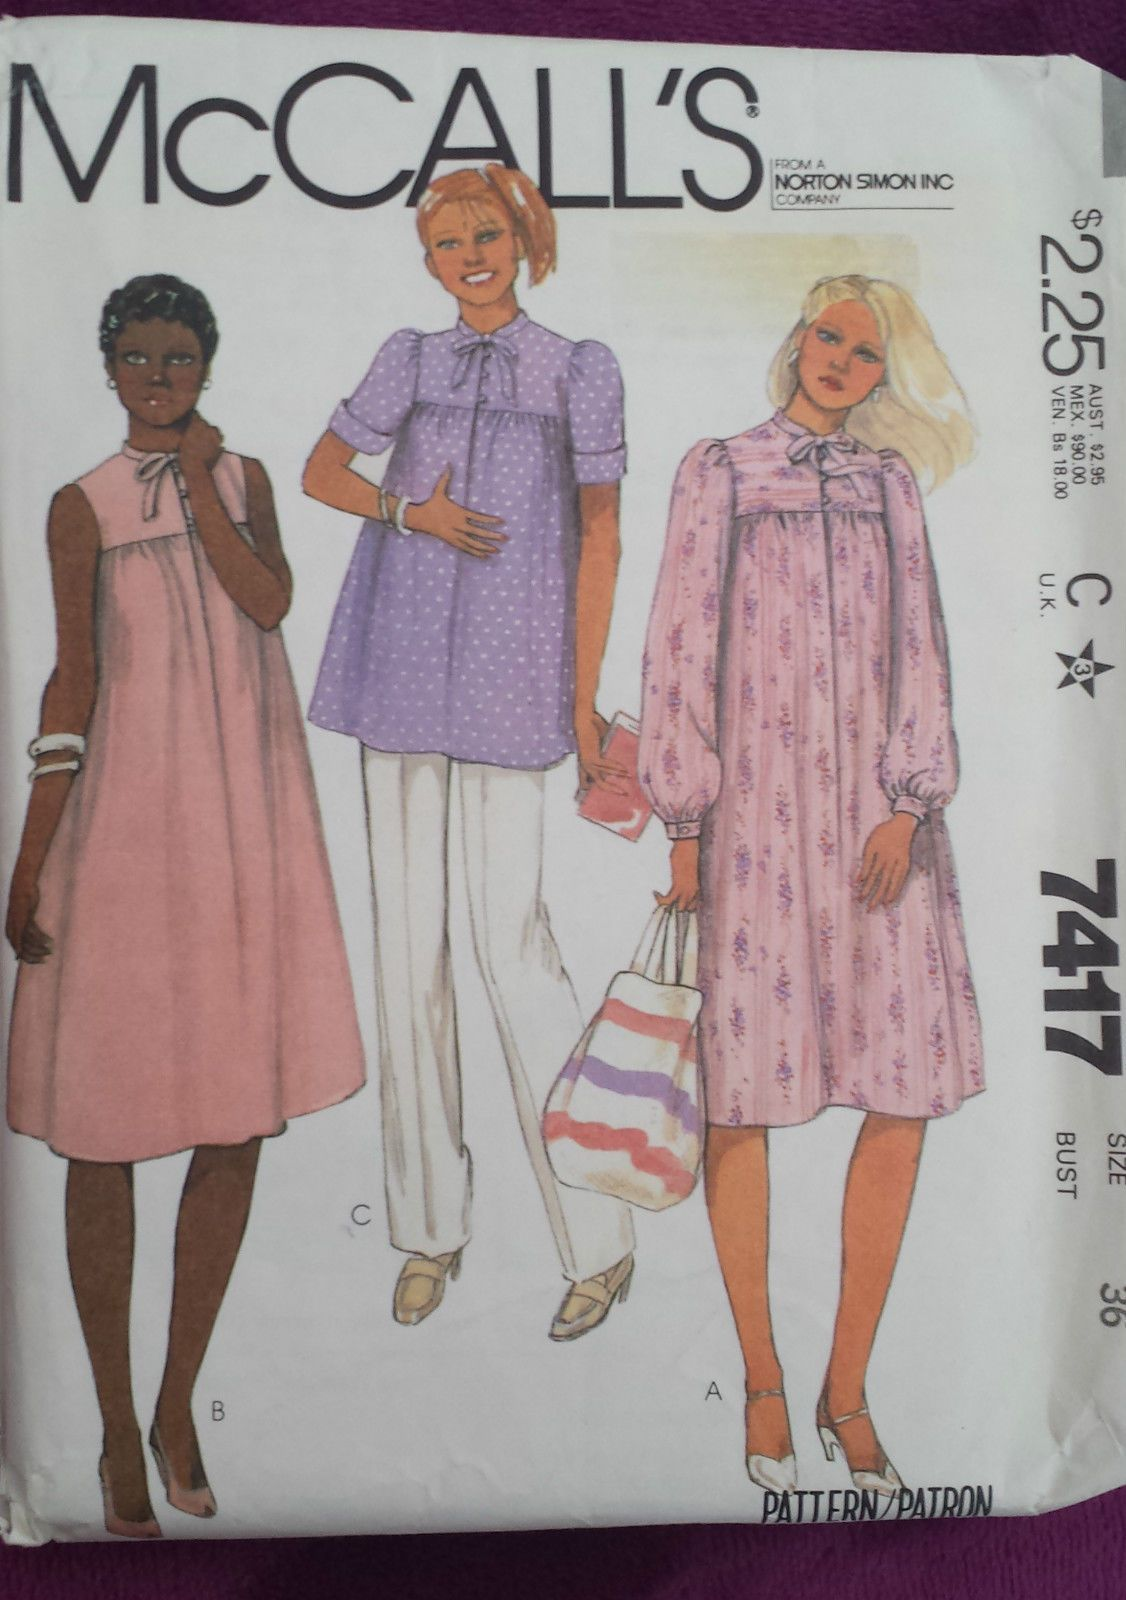 Vintage 1980s sewing pattern mccalls 7417 maternity dress pants vintage 1980s sewing pattern mccalls 7417 maternity dress pants complete b 36 ebay ombrellifo Gallery